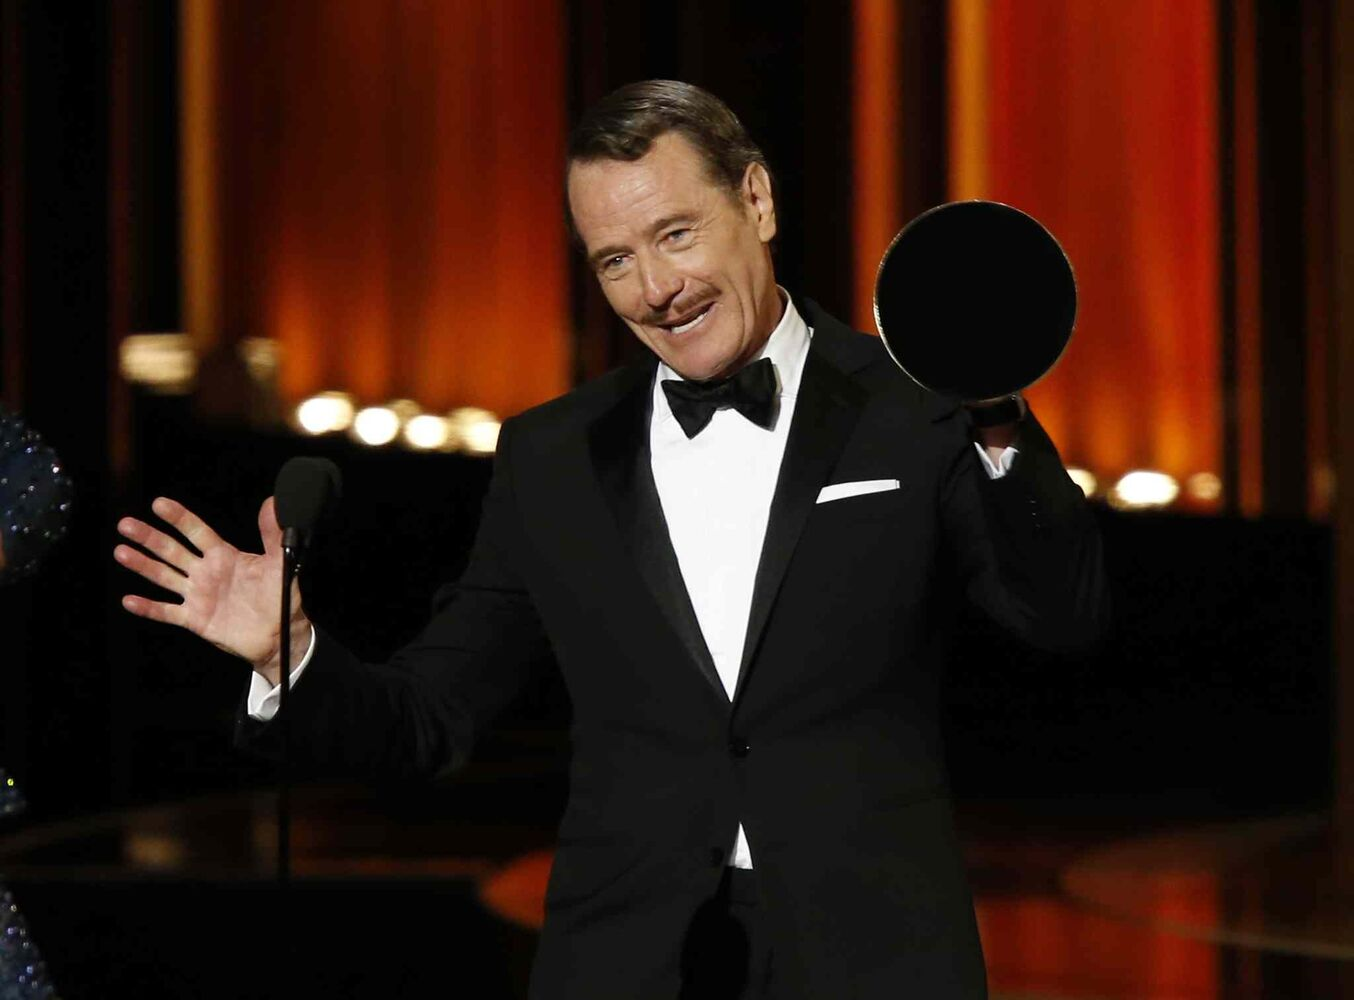 Bryan Cranston accepts the award for Outstanding Lead Actor In A Drama Series for his role in Breaking Bad during the 66th Primetime Emmy Awards in Los Angeles. His co-stars Anna Gunn and Aaron Paul also won for their supporting roles and the show took home an Emmy for outstanding drama series.